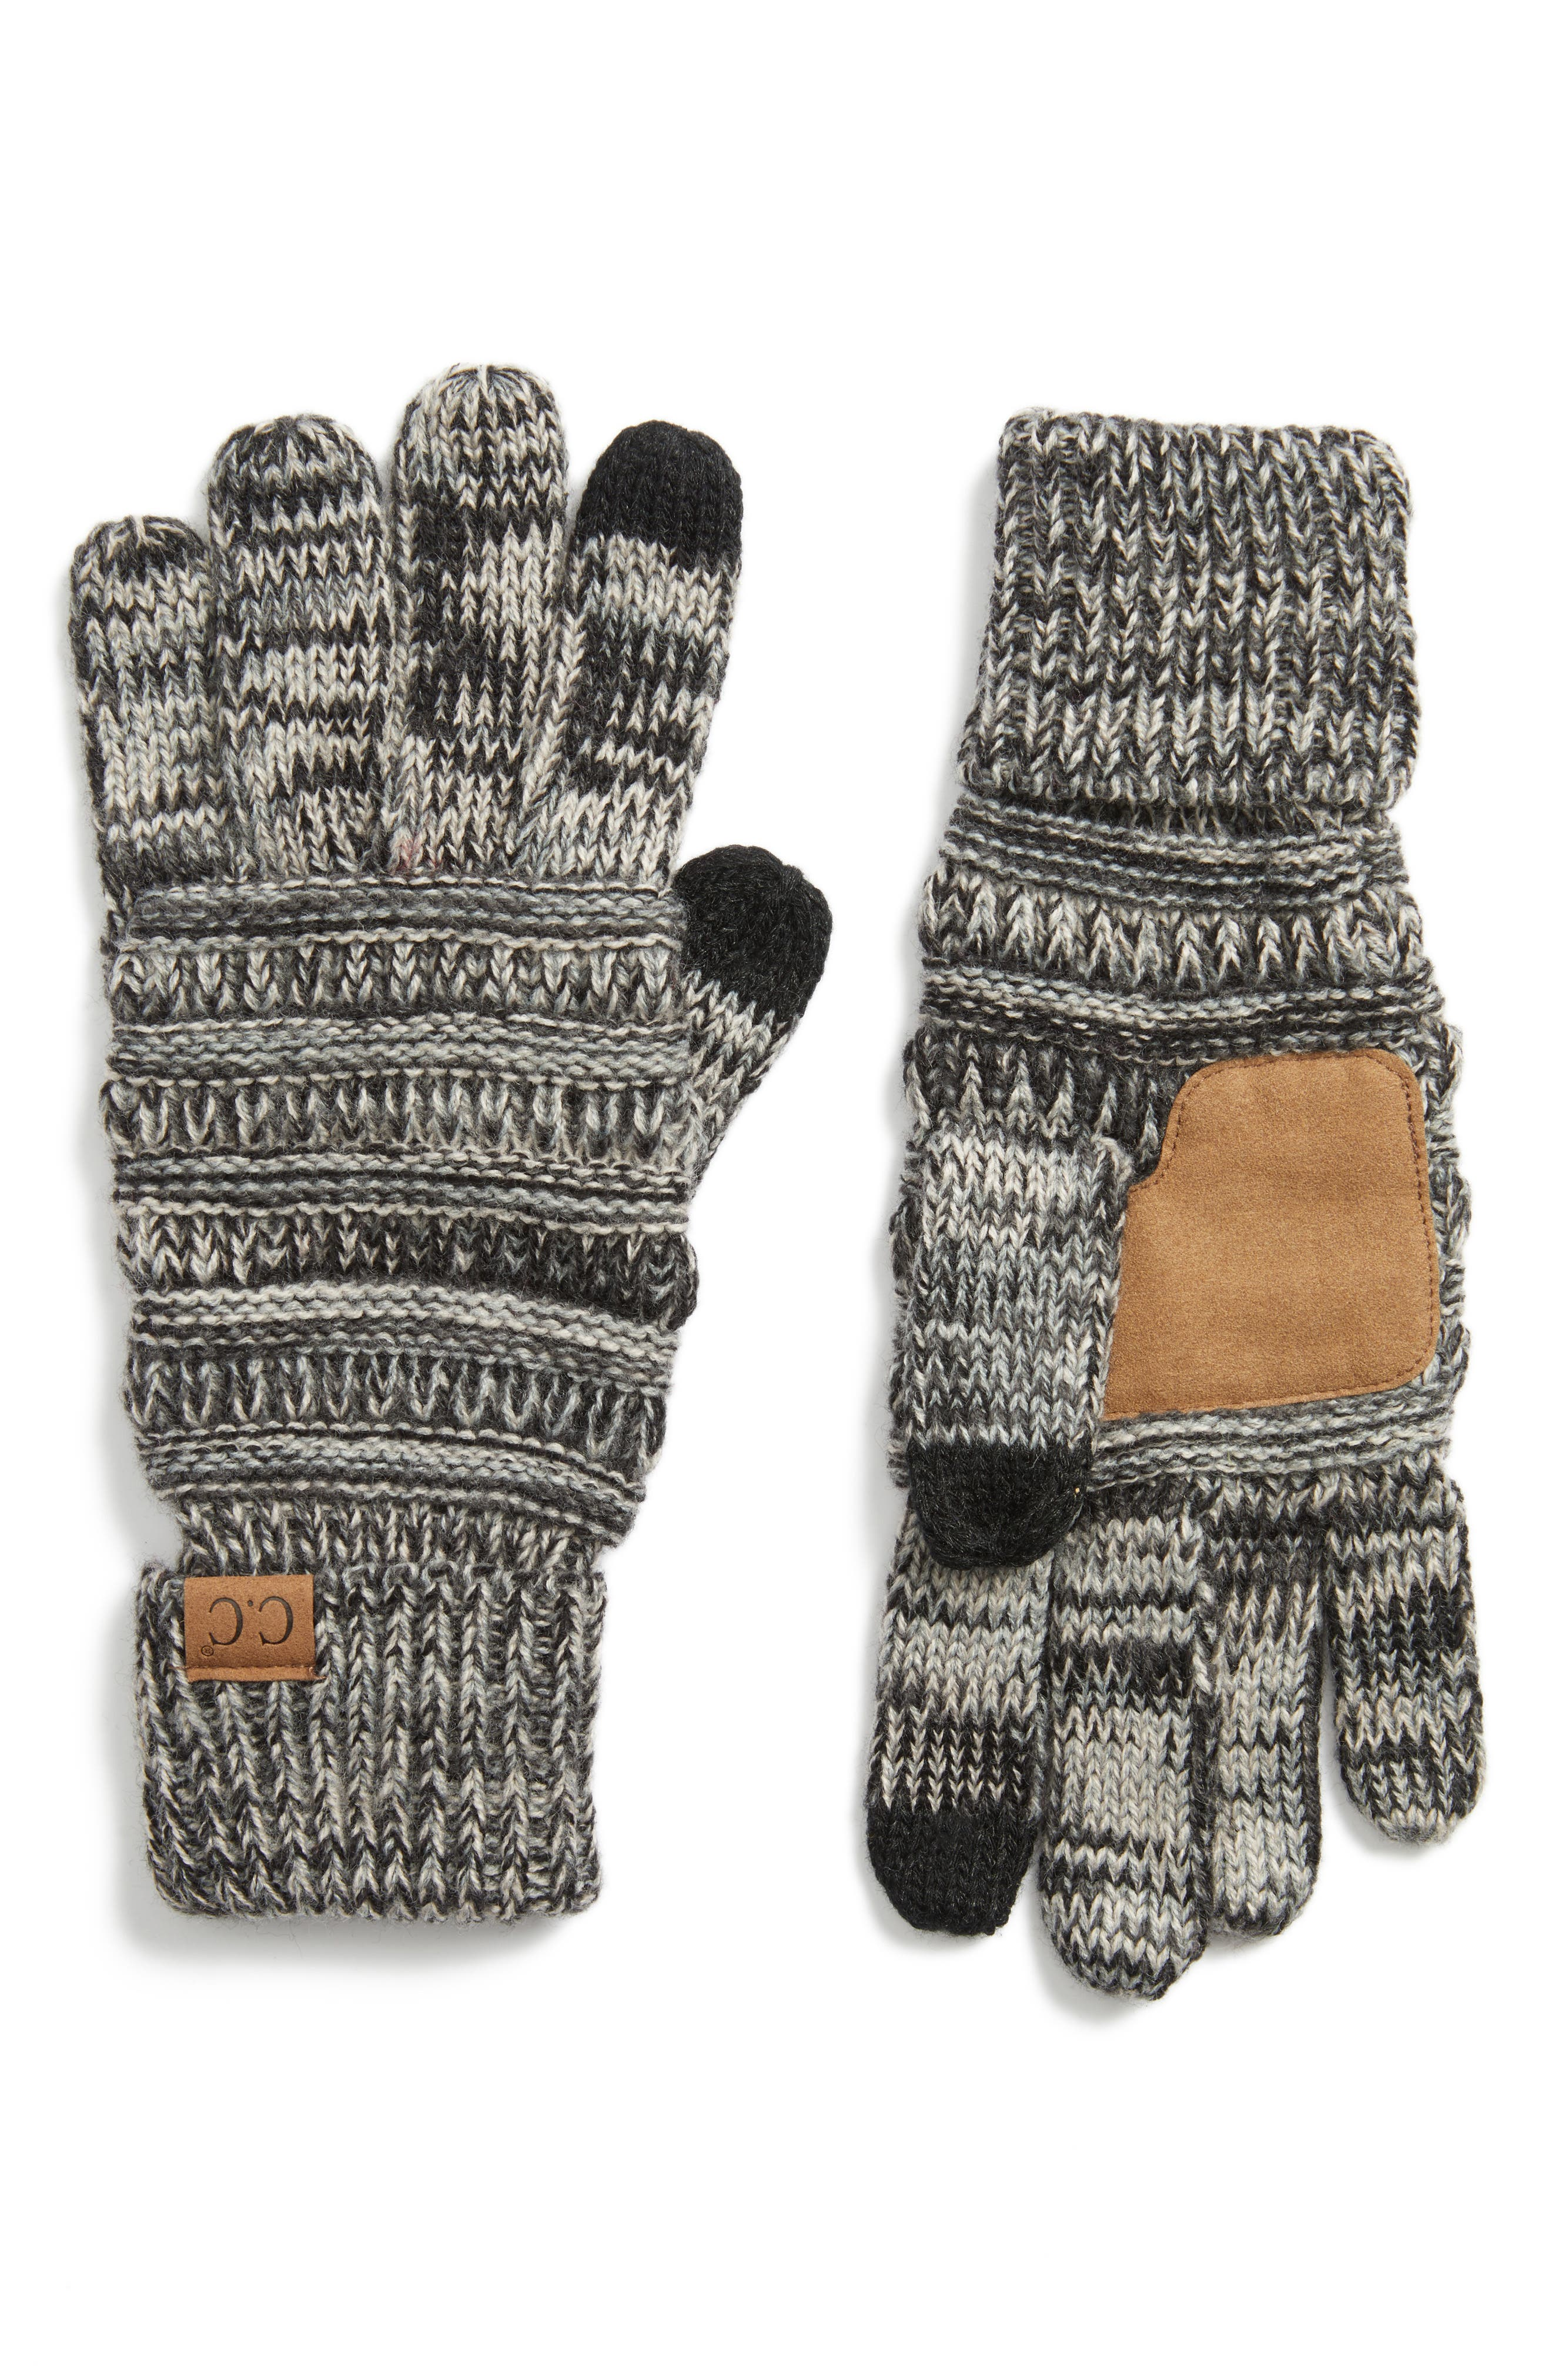 Knit Tech Gloves,                             Main thumbnail 1, color,                             001